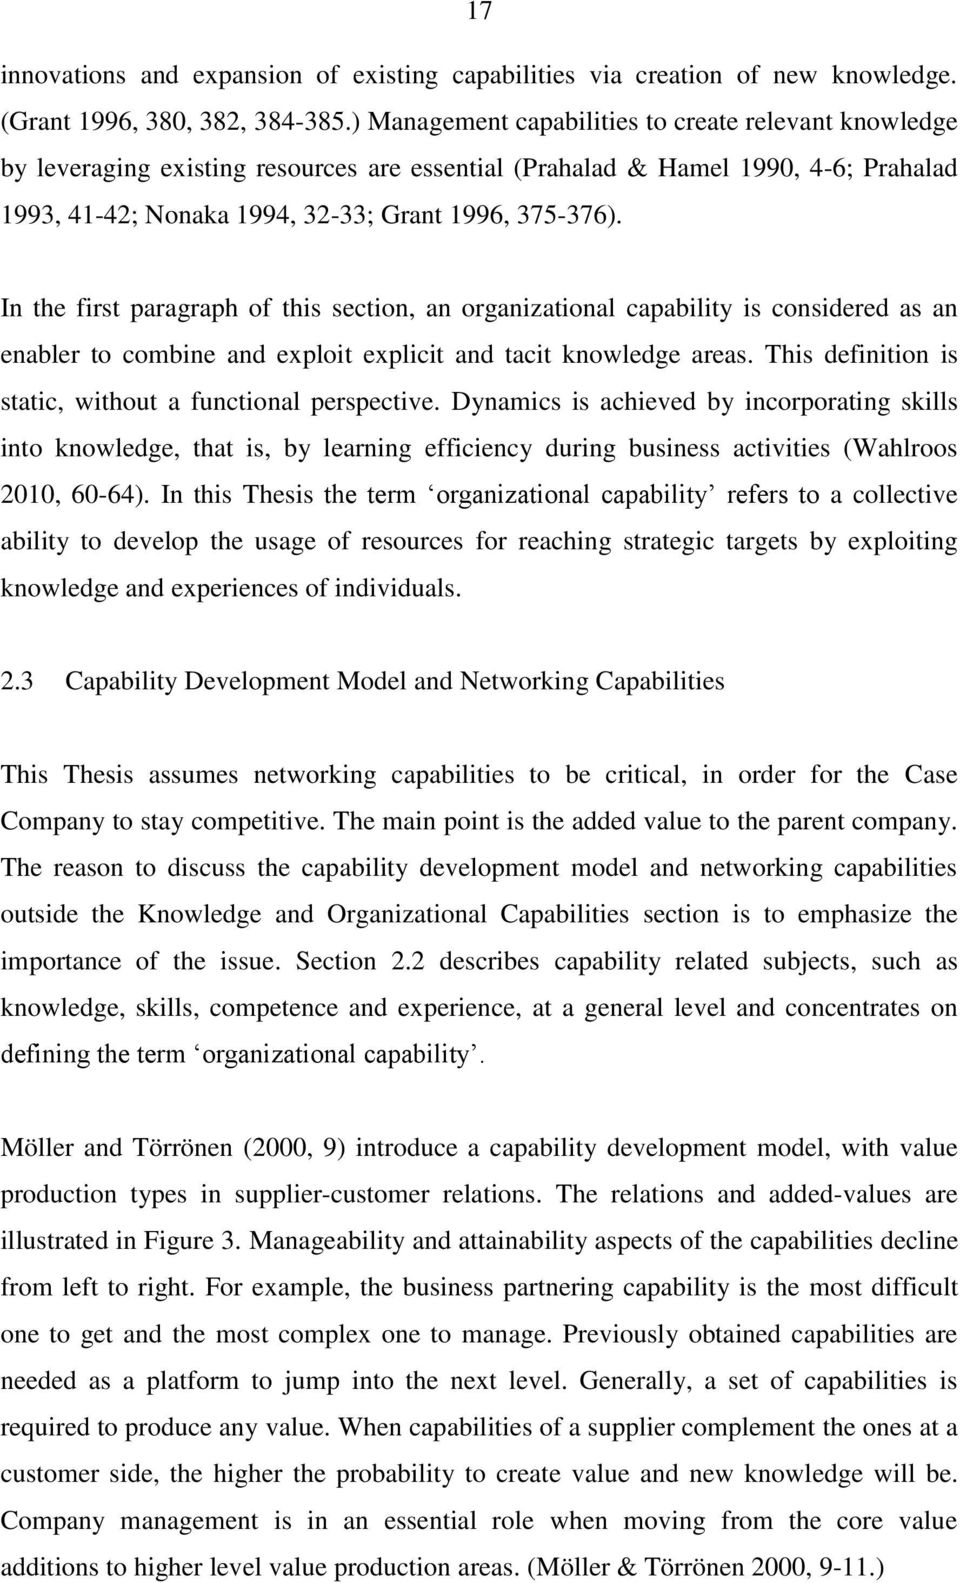 In the first paragraph of this section, an organizational capability is considered as an enabler to combine and exploit explicit and tacit knowledge areas.